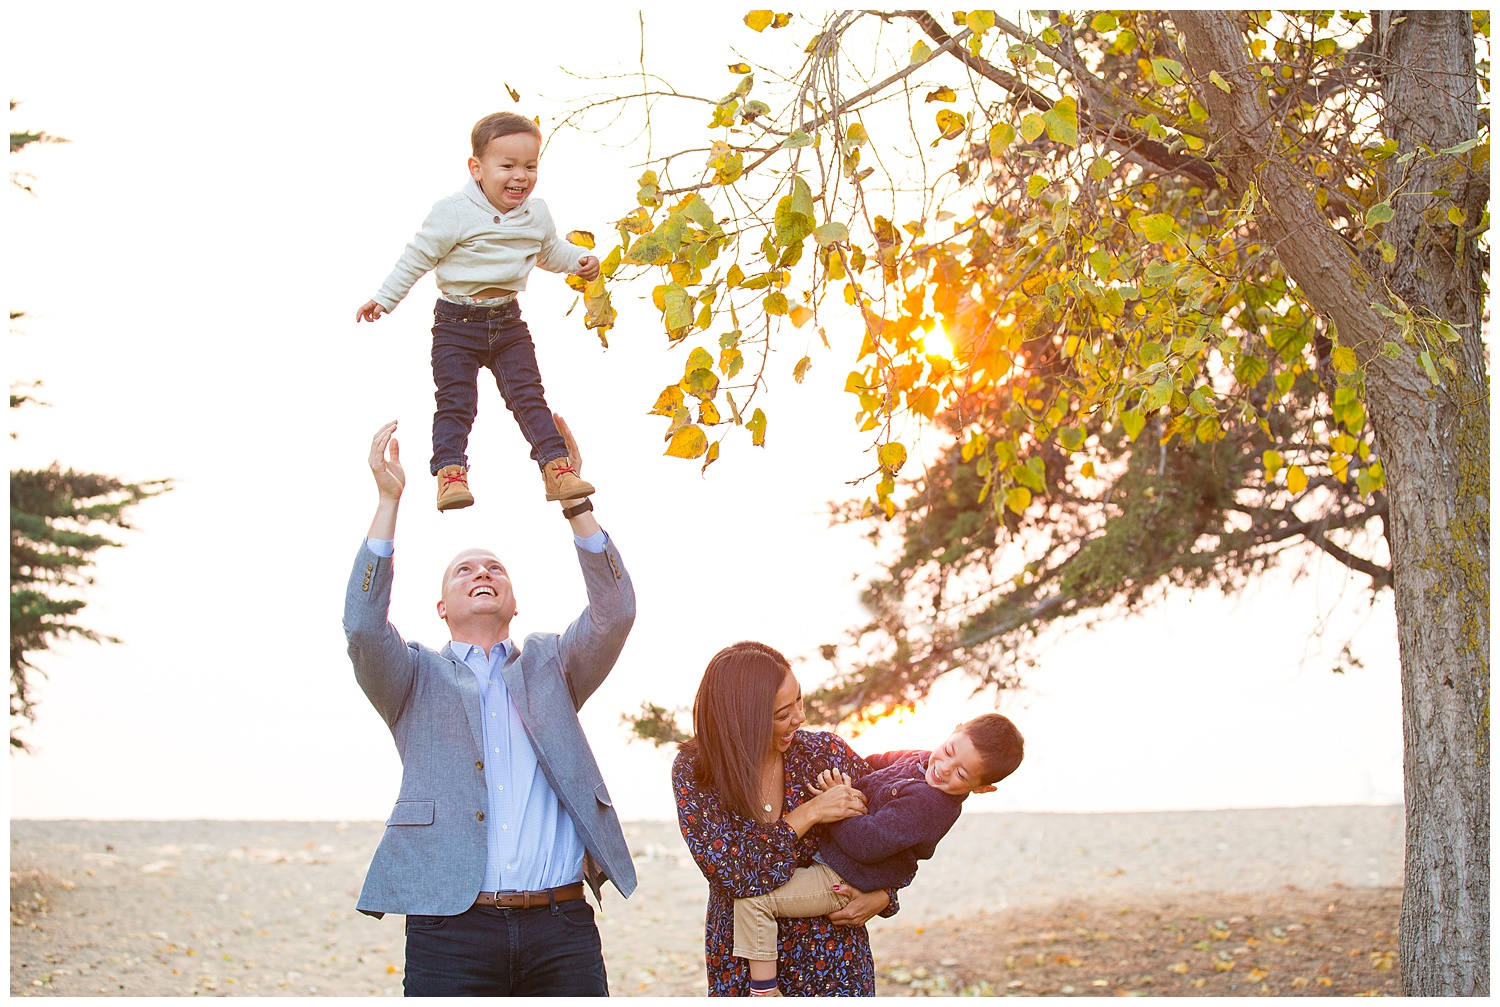 alameda.family.photographer_0007.jpg